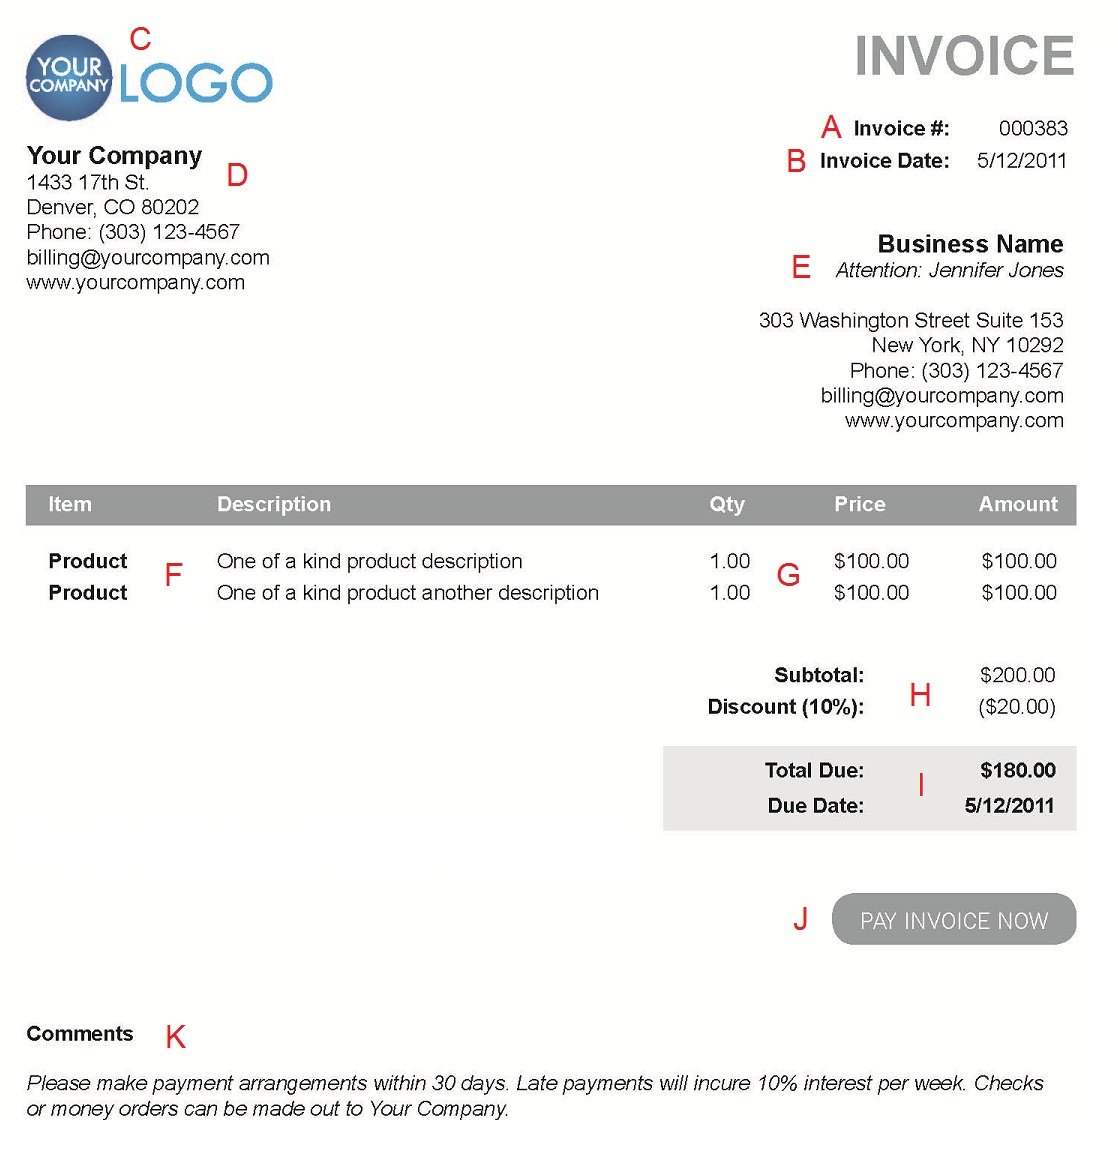 Usdgus  Wonderful The  Different Sections Of An Electronic Payment Invoice With Foxy A  With Attractive Quickbooks Online Invoices Also Invoice Format Template In Addition Create Free Invoices And Hourly Invoice As Well As Late Fees On Invoices Additionally Process Invoices From Paysimplecom With Usdgus  Foxy The  Different Sections Of An Electronic Payment Invoice With Attractive A  And Wonderful Quickbooks Online Invoices Also Invoice Format Template In Addition Create Free Invoices From Paysimplecom